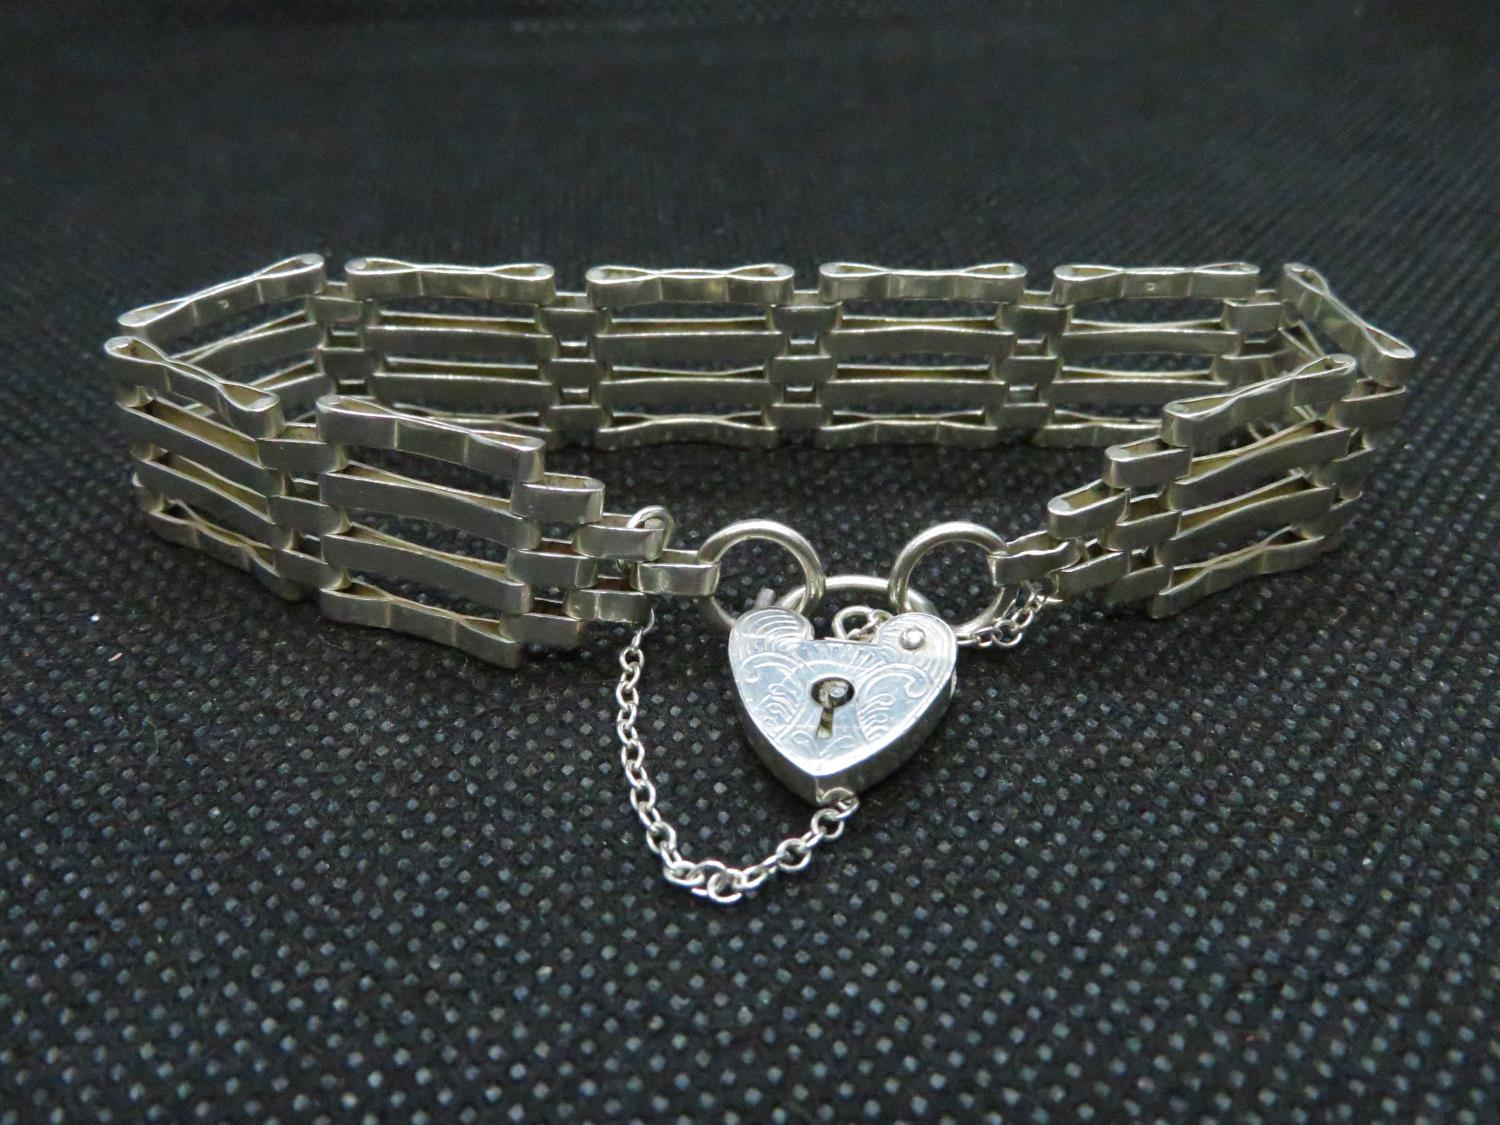 Lot 43 - Vintage silver 4 bar gate bracelet with lock and chain HM London 1979 16grams